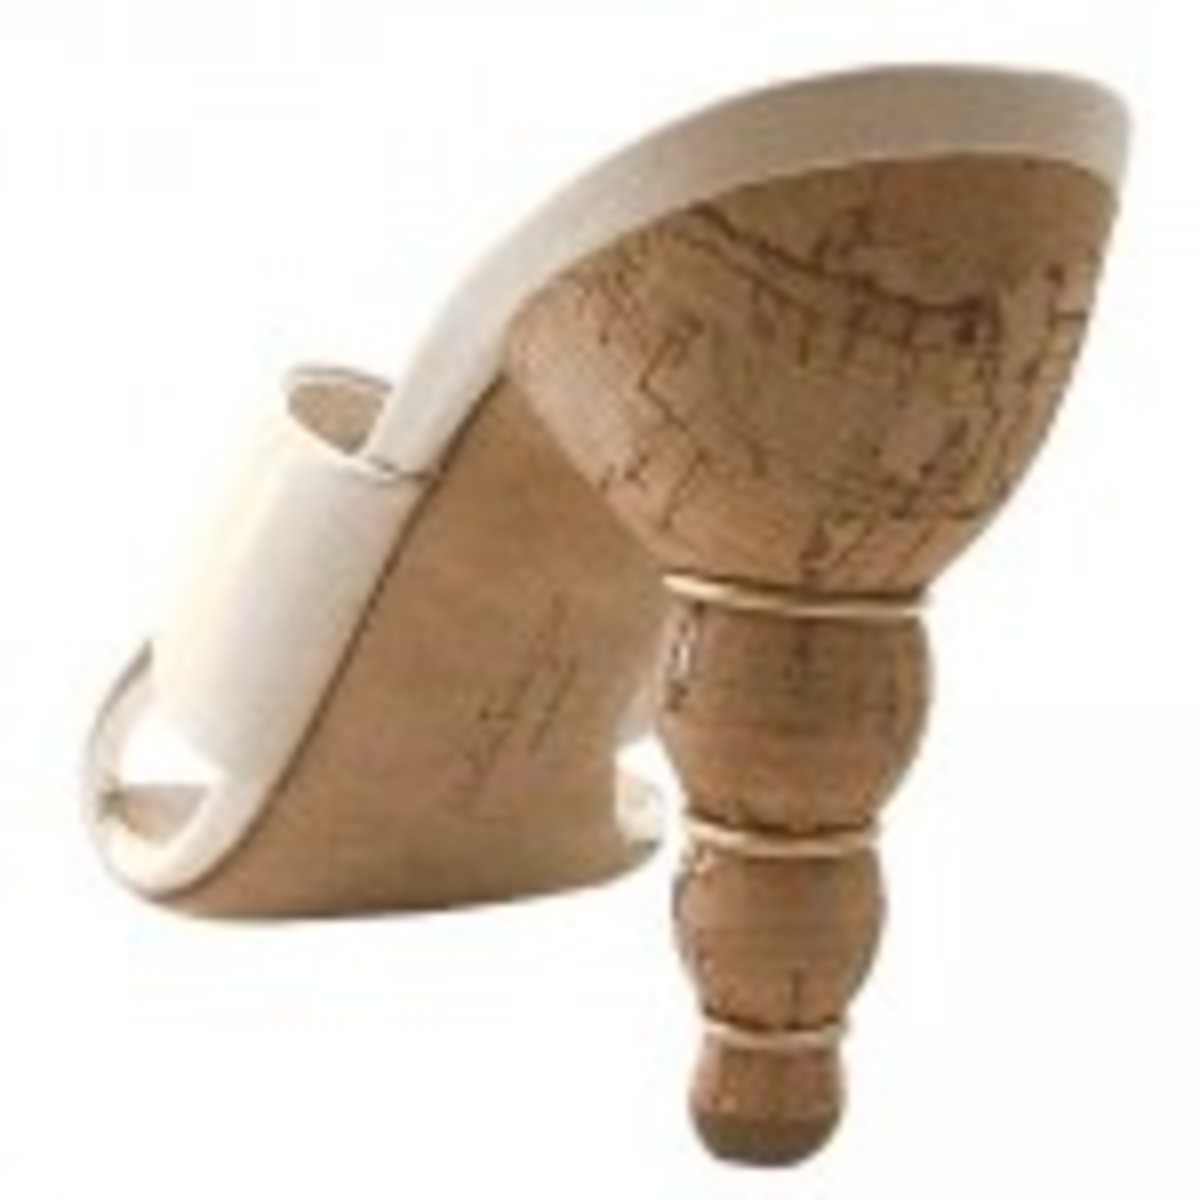 Ferragamo was the first shoemaker to use cork for heels.